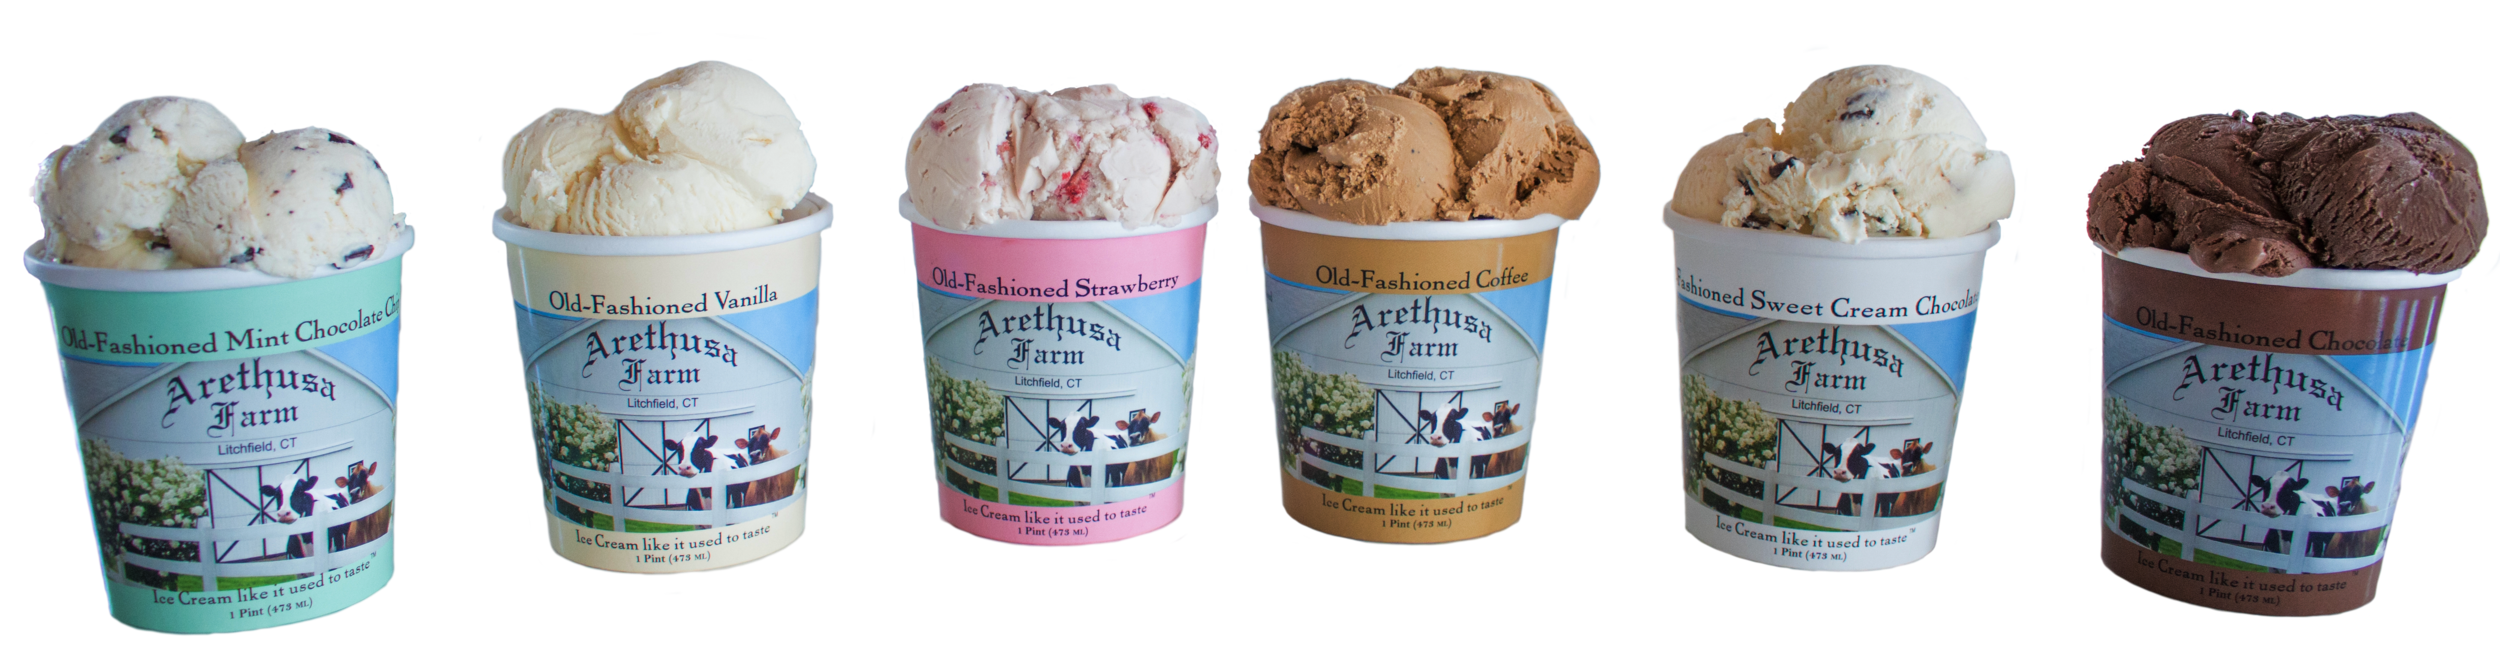 Arethusa Farm Dairy Ice Cream Wholesale Lineup